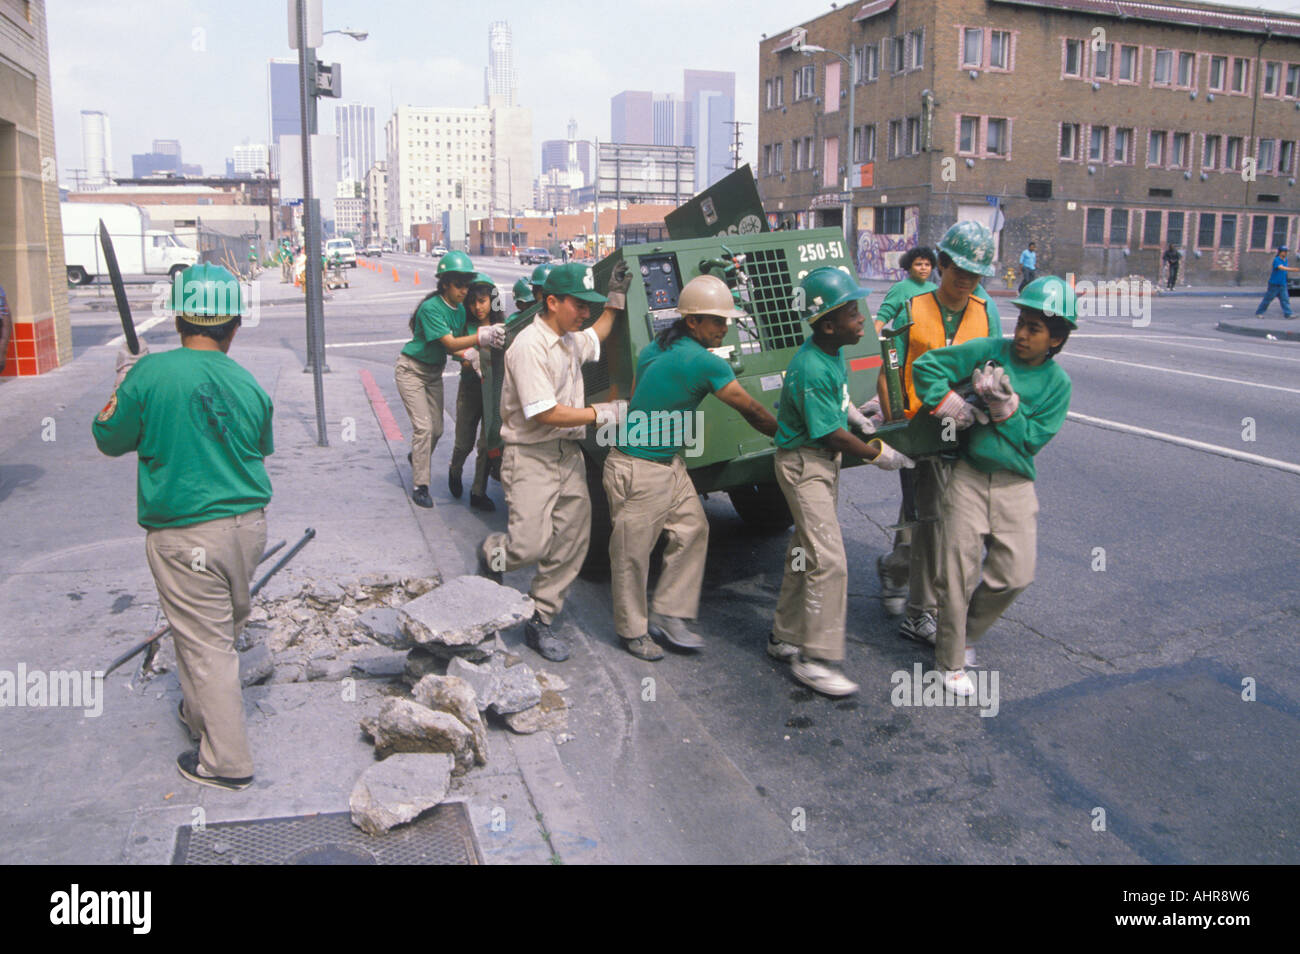 Urban cleanup crew in Los Angeles on Earth Day - Stock Image